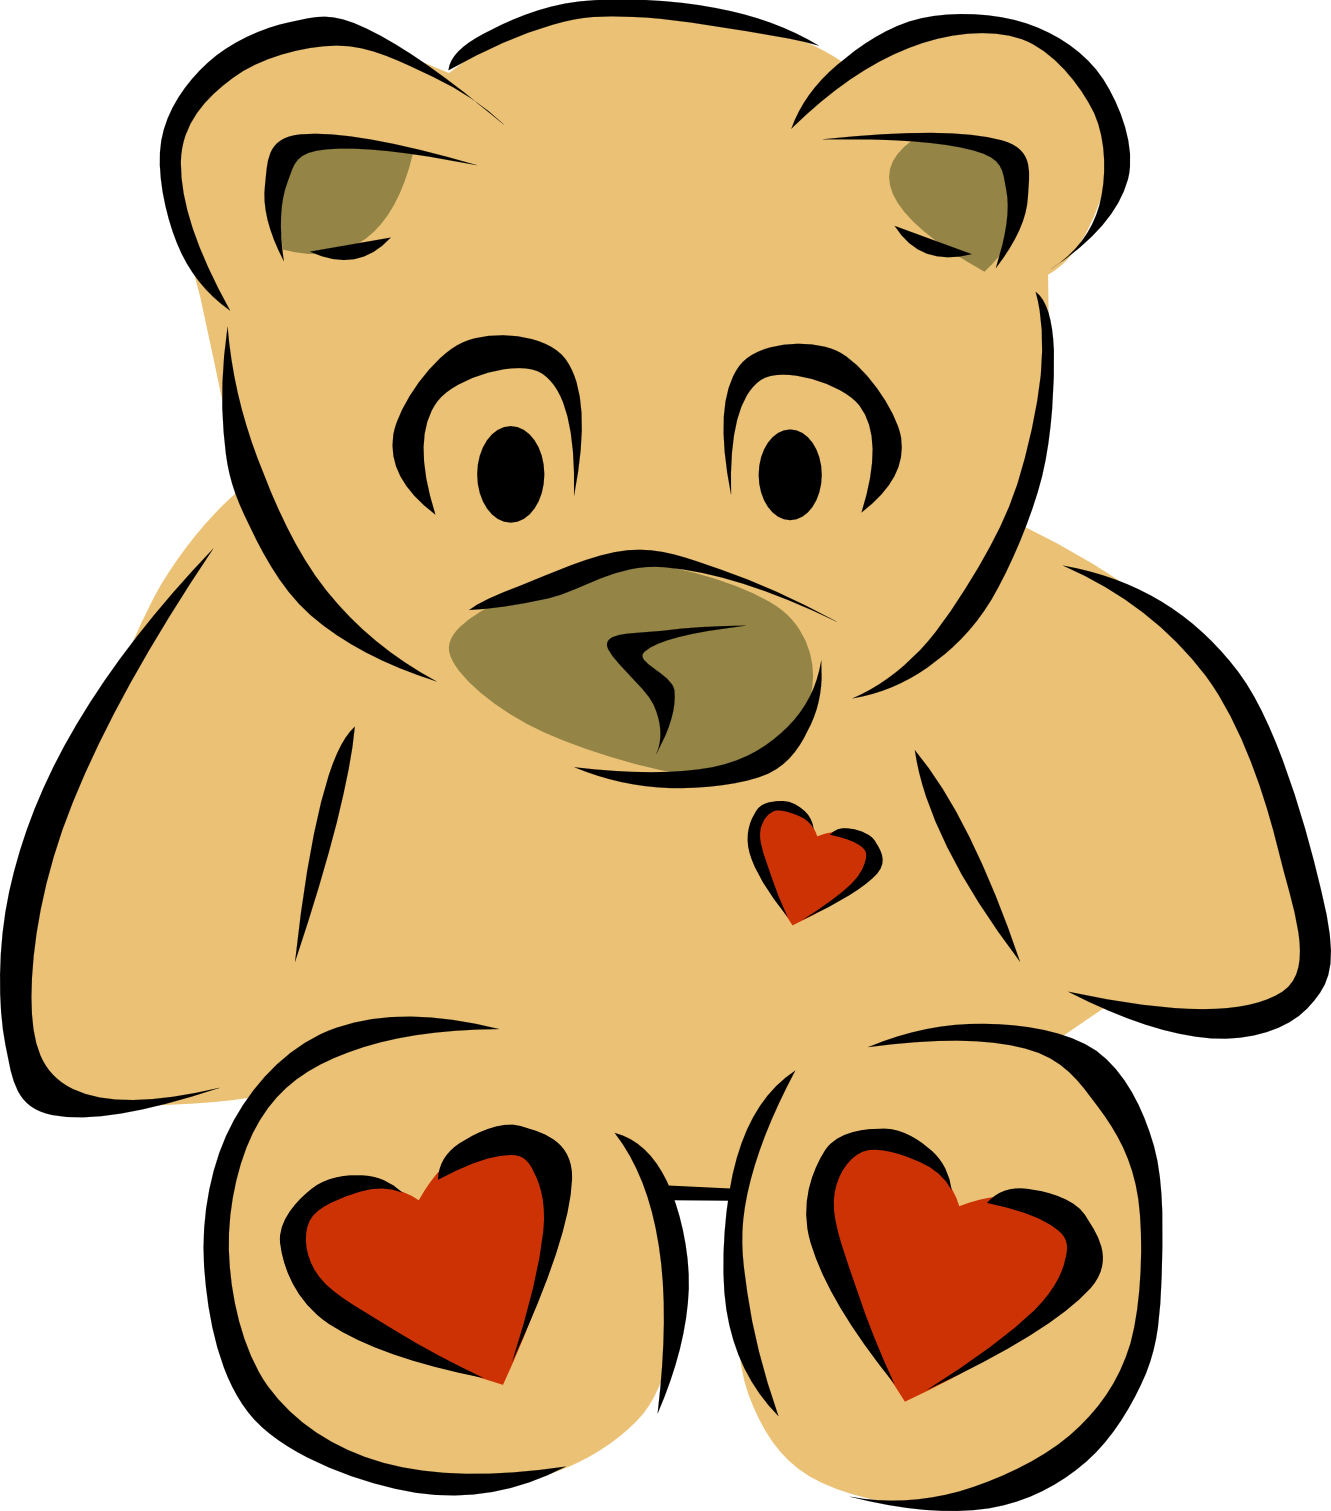 Baby Grizzly Bear Clipart | Clipart Panda - Free Clipart Images